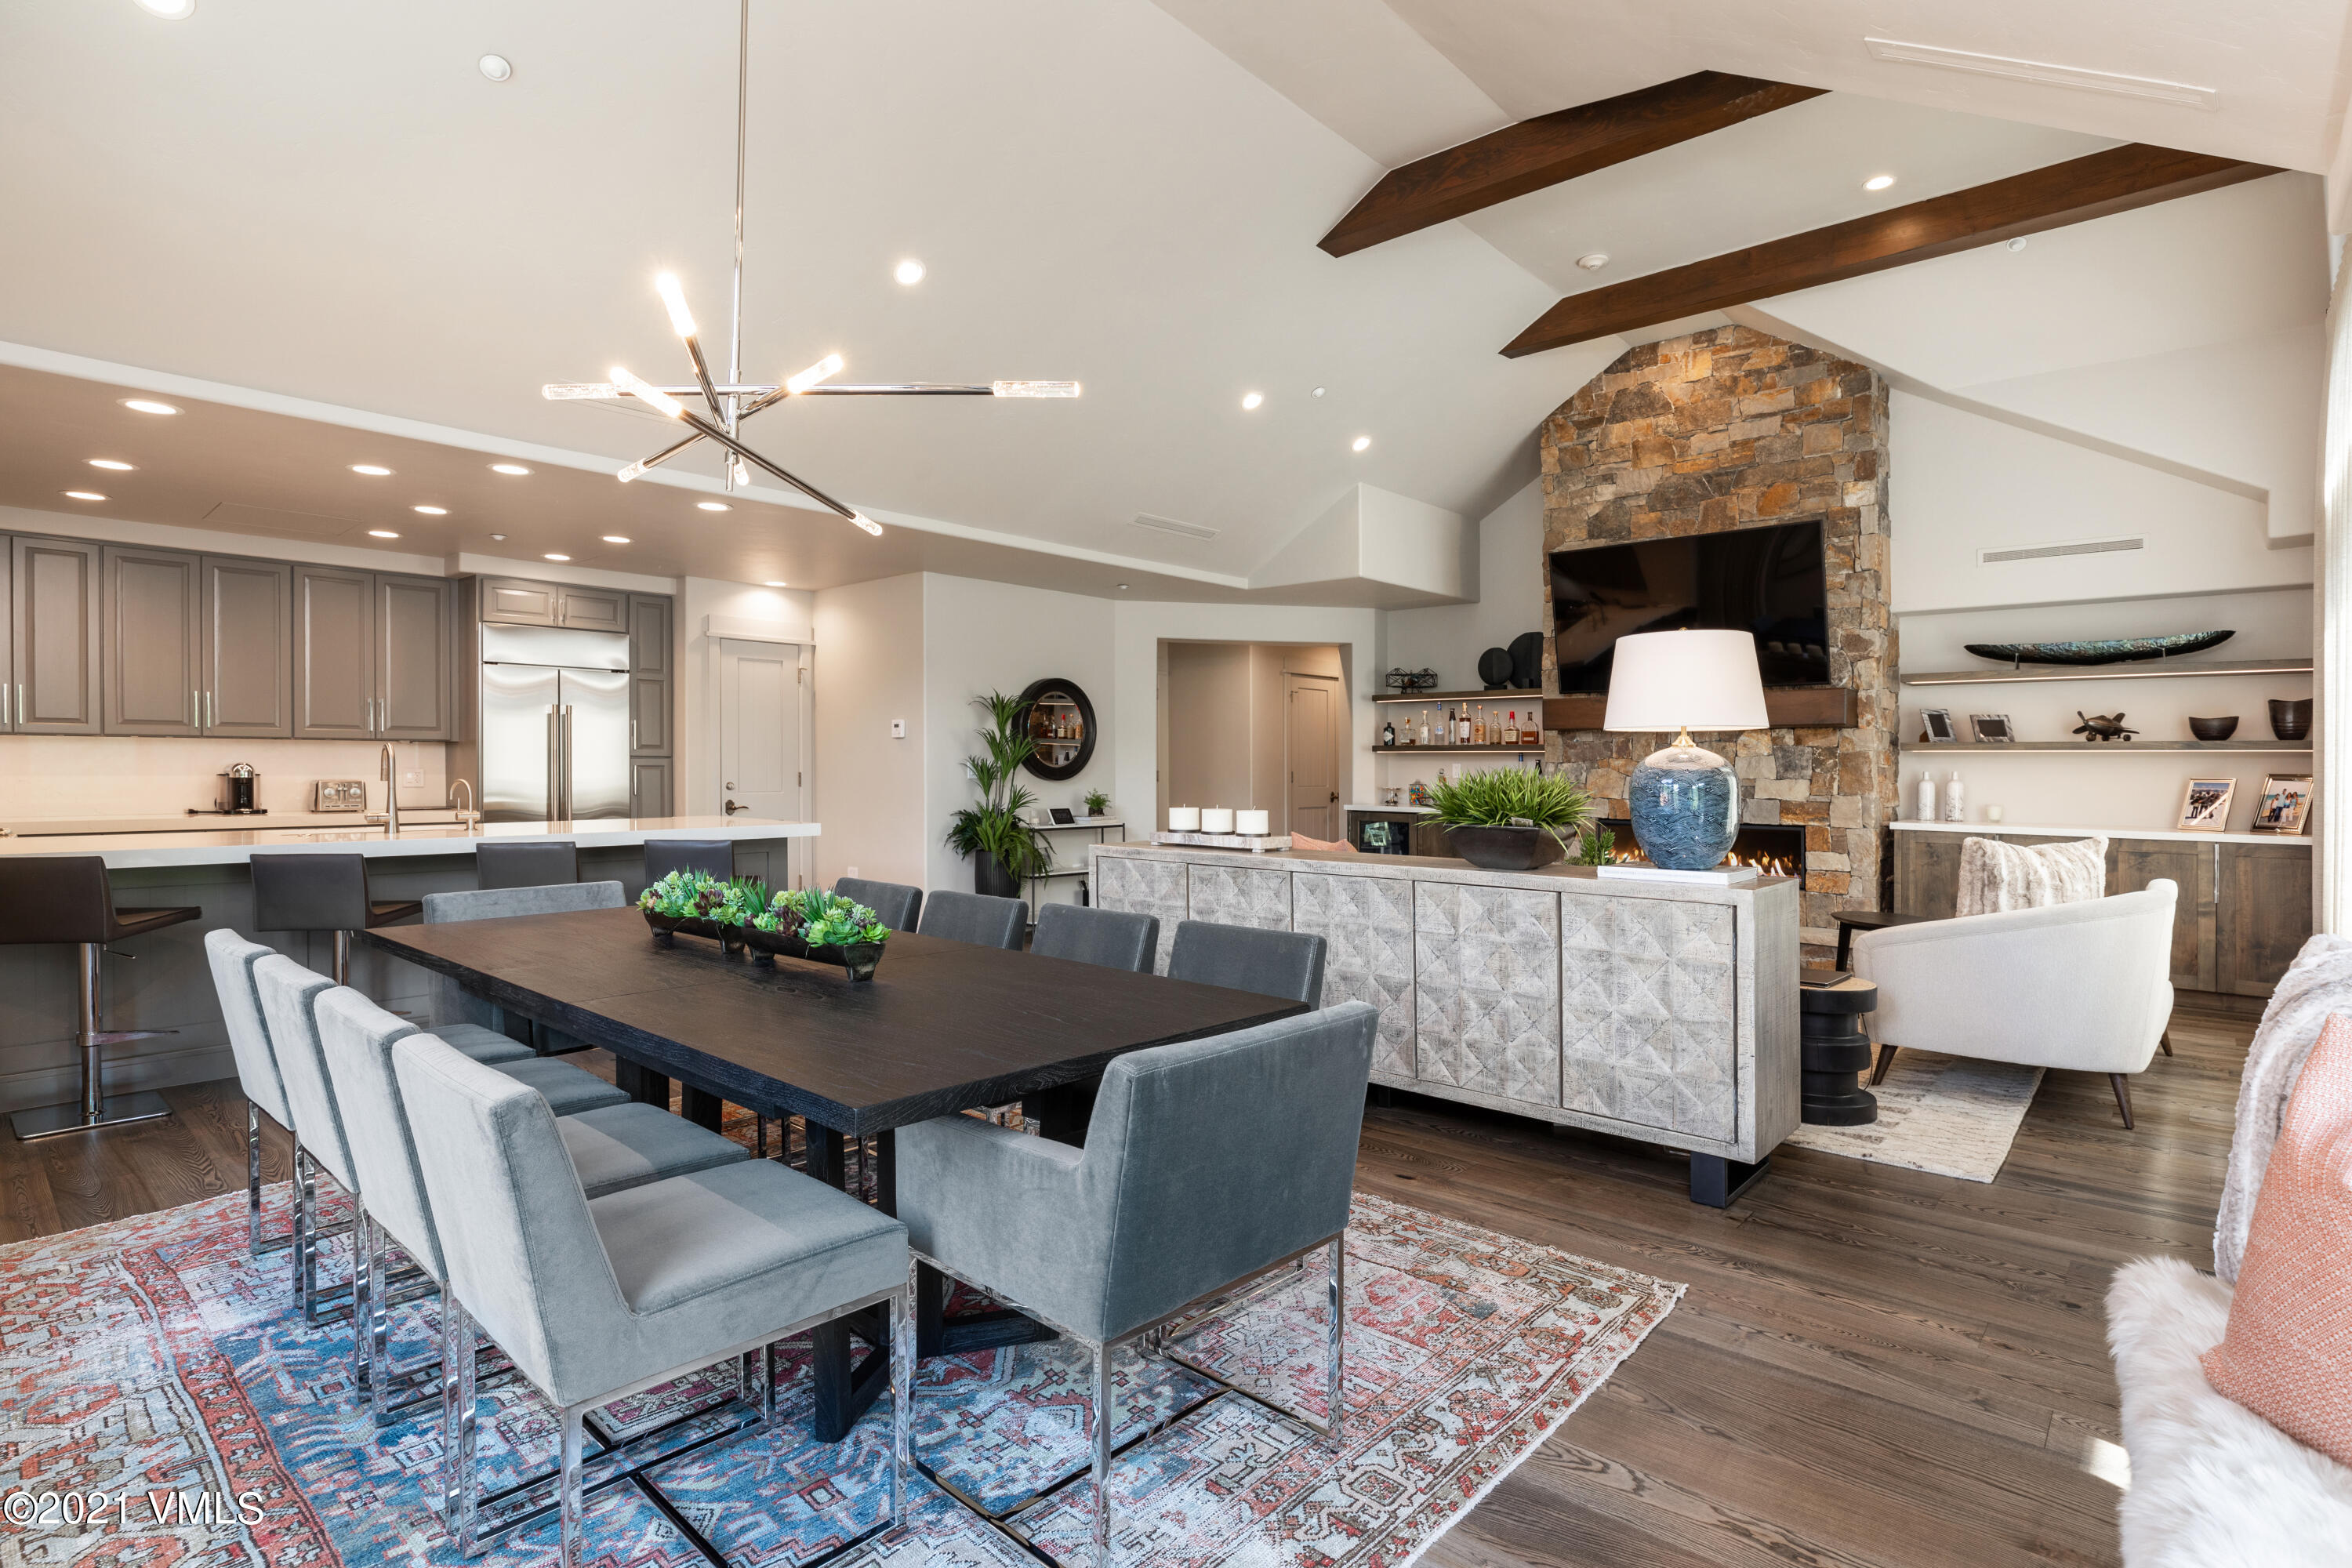 Gorgeous designer remodel just completed by Katy Allen. Enjoy living in the heart of Arrowhead, just steps to the ski lift, swimming pool, tennis courts and Country Club of the Rockies. This stunning residence lives open and easy on one floor with views of the ski slopes from the deck.